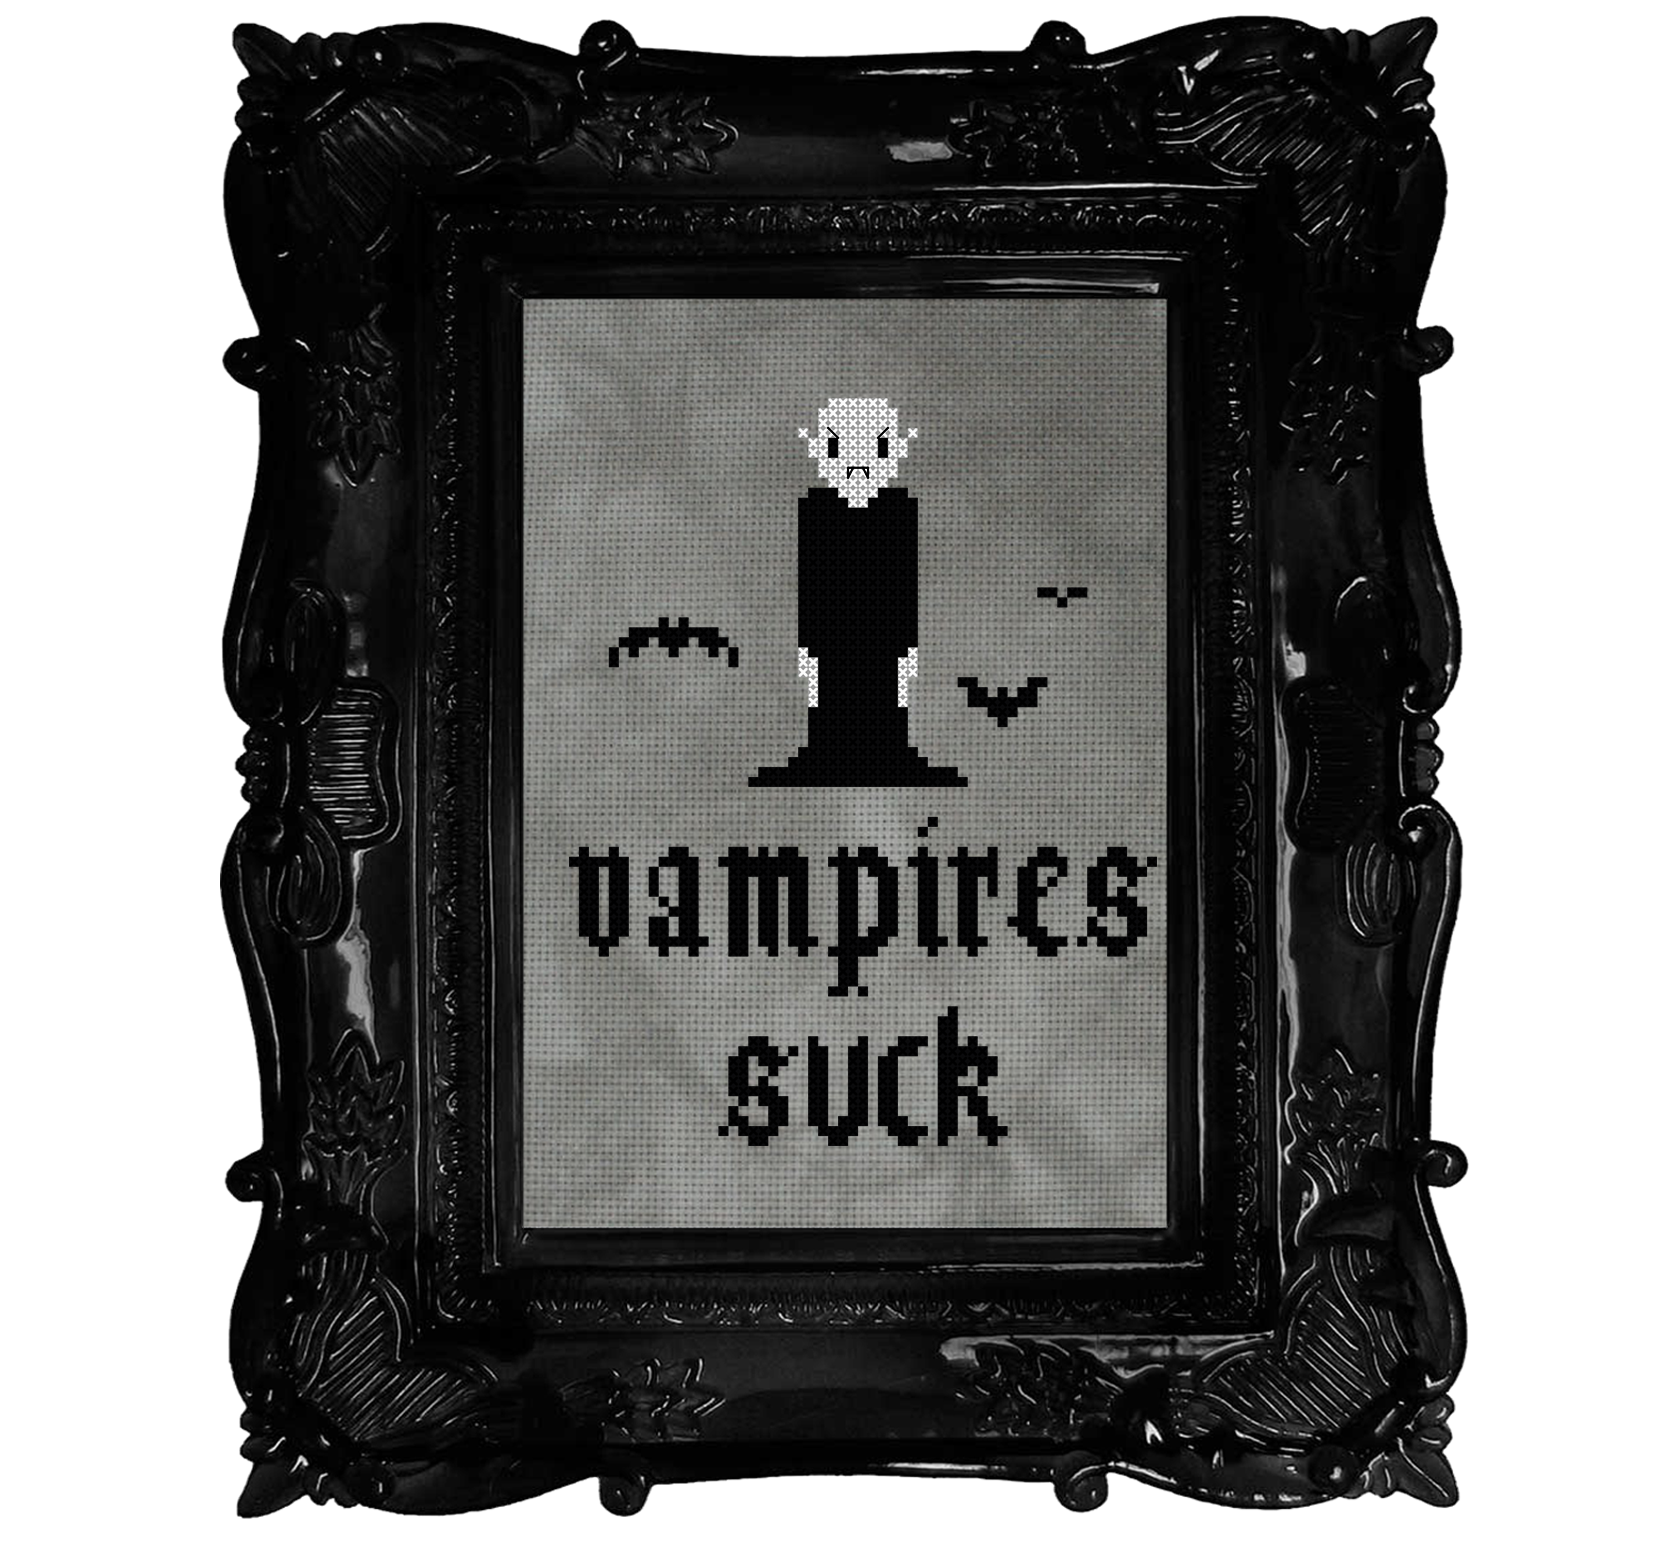 Vampires Suck - Count Orlock